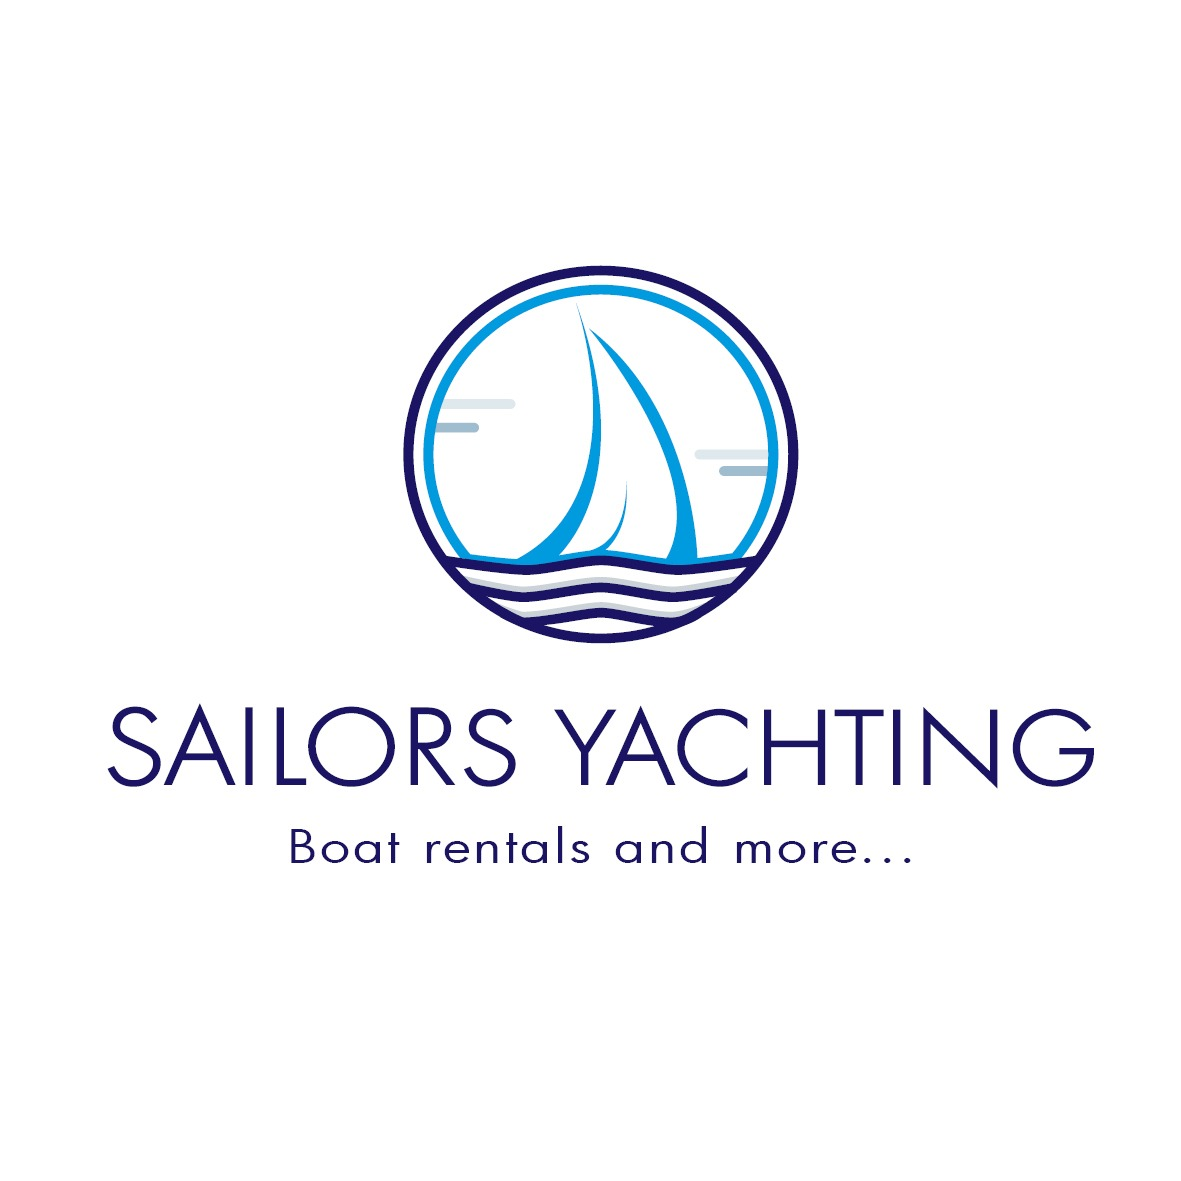 Sailors Yachting